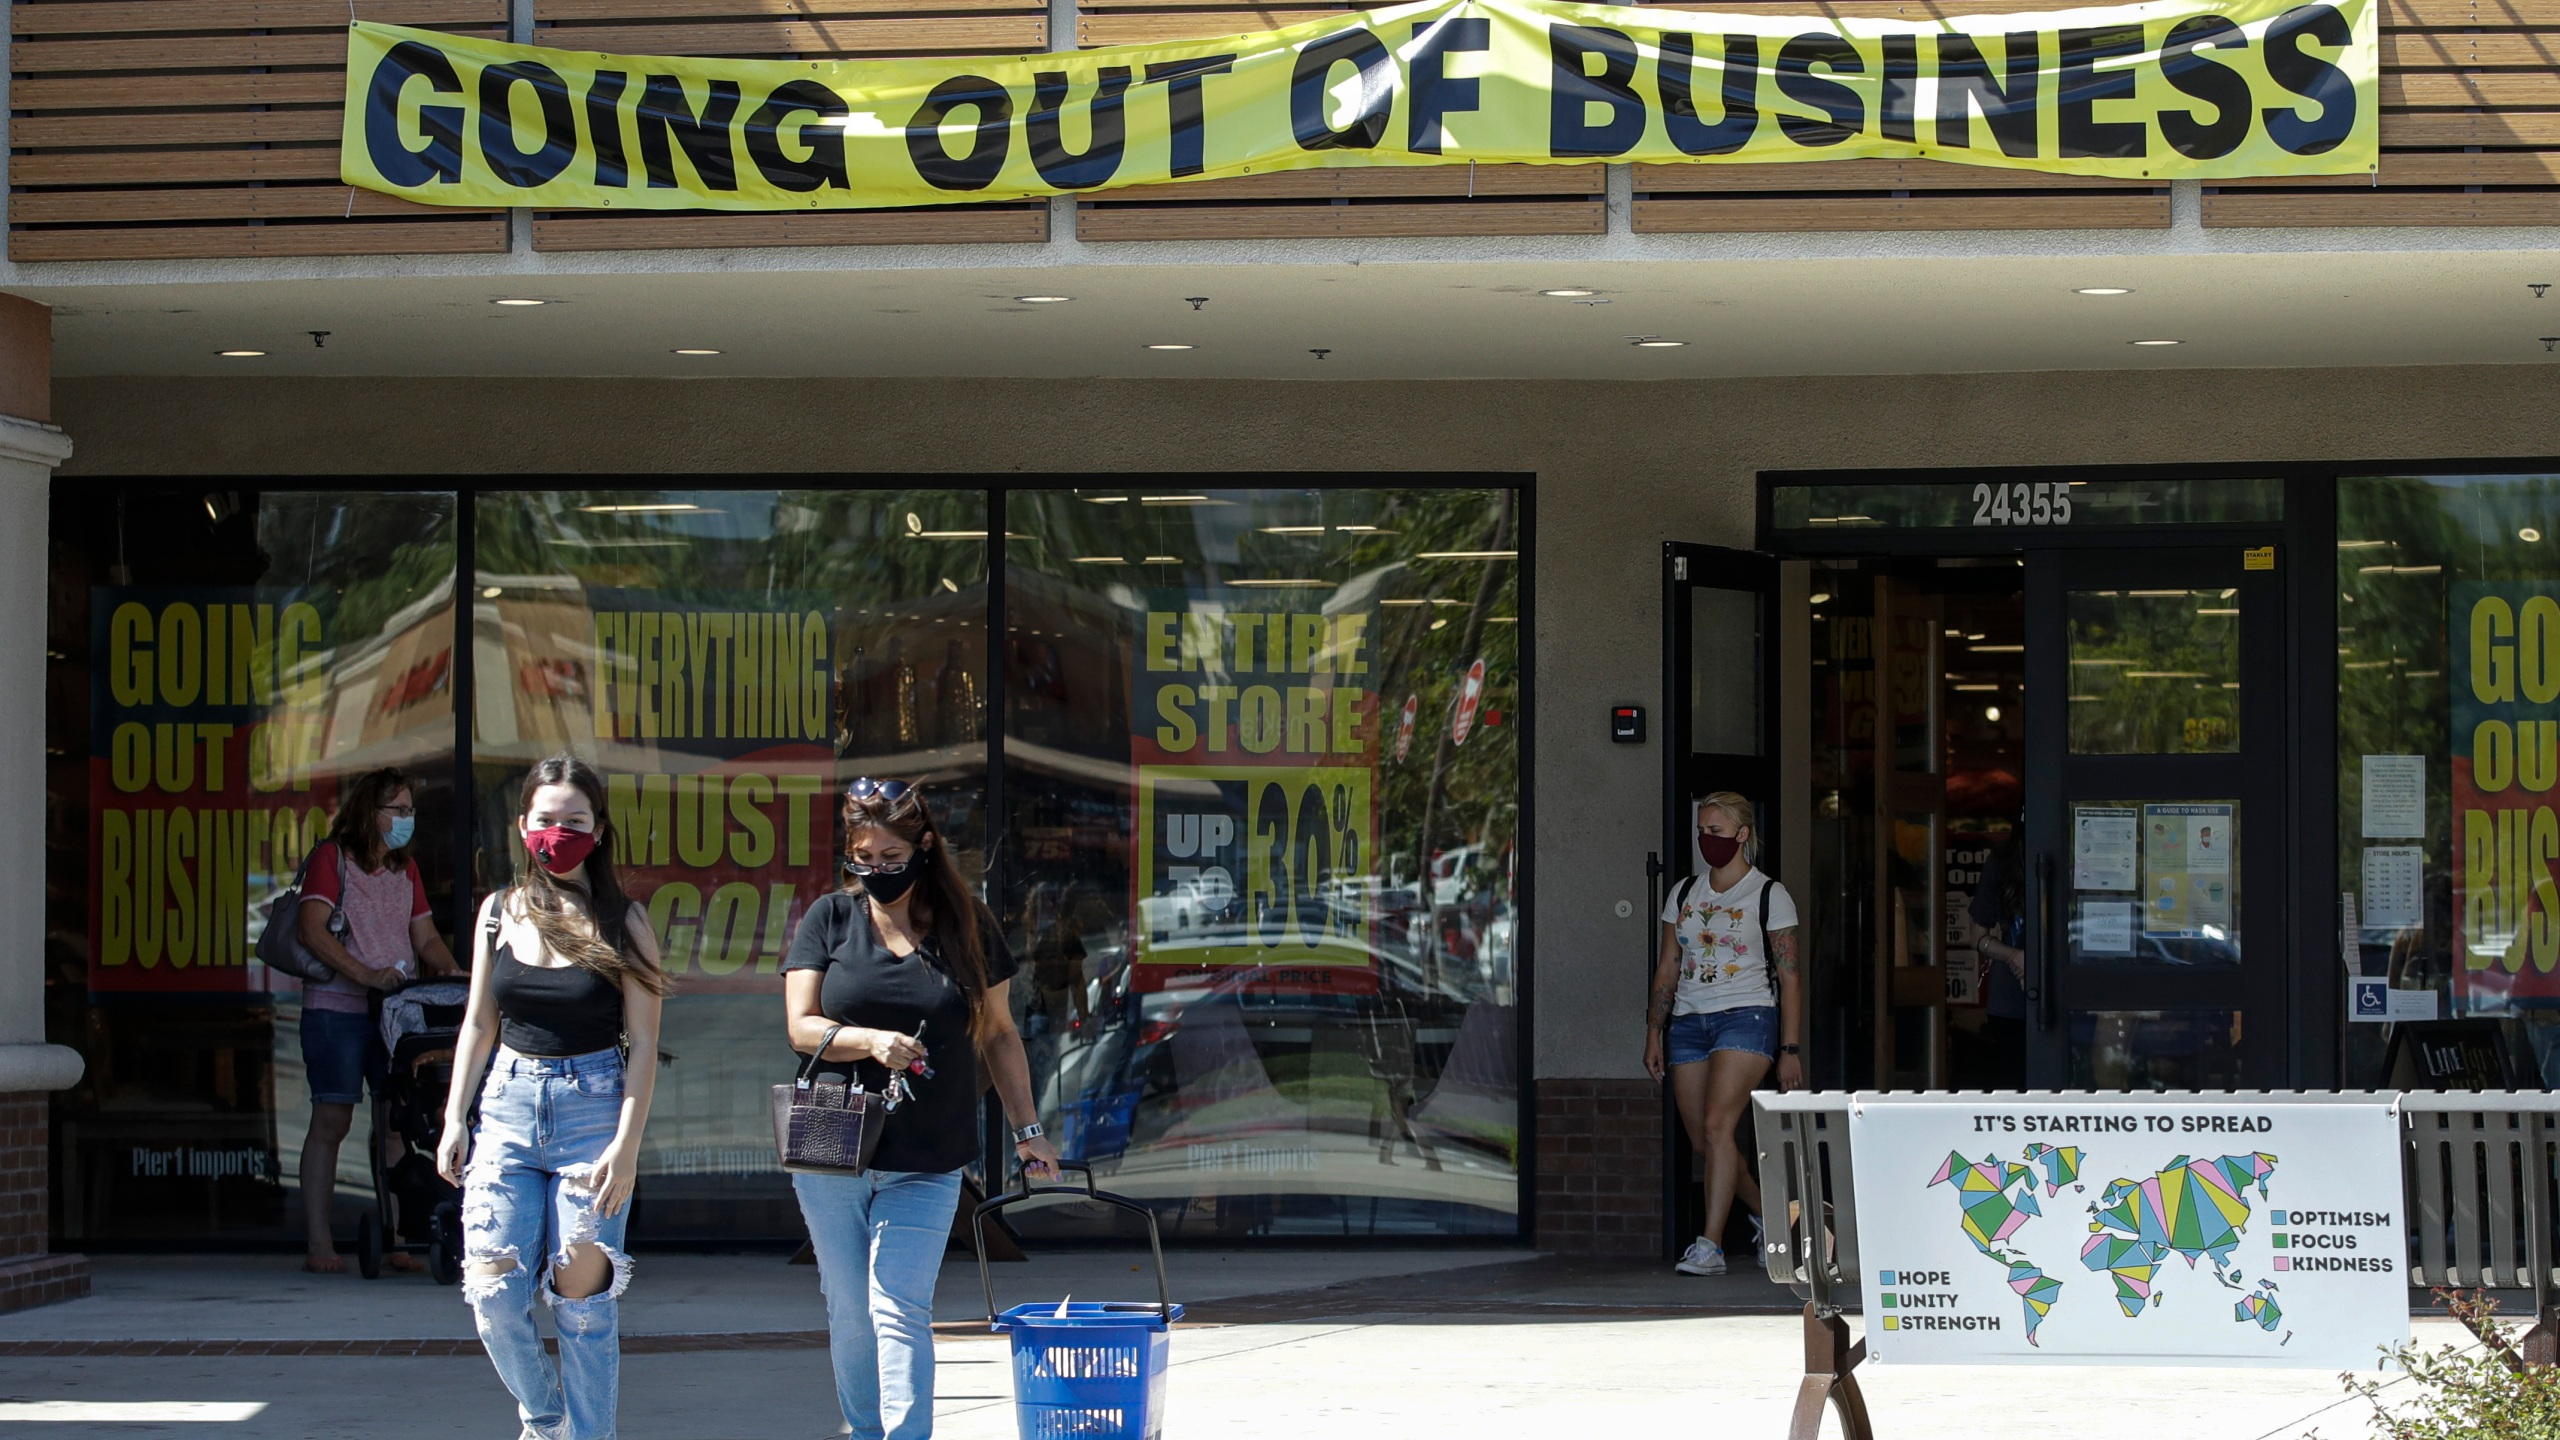 Shoppers walk outside of a Pier 1 Imports store as going out of business signs are posted amid the coronavirus pandemic Wednesday, July 1, 2020, in Santa Clarita. (AP Photo/Marcio Jose Sanchez)